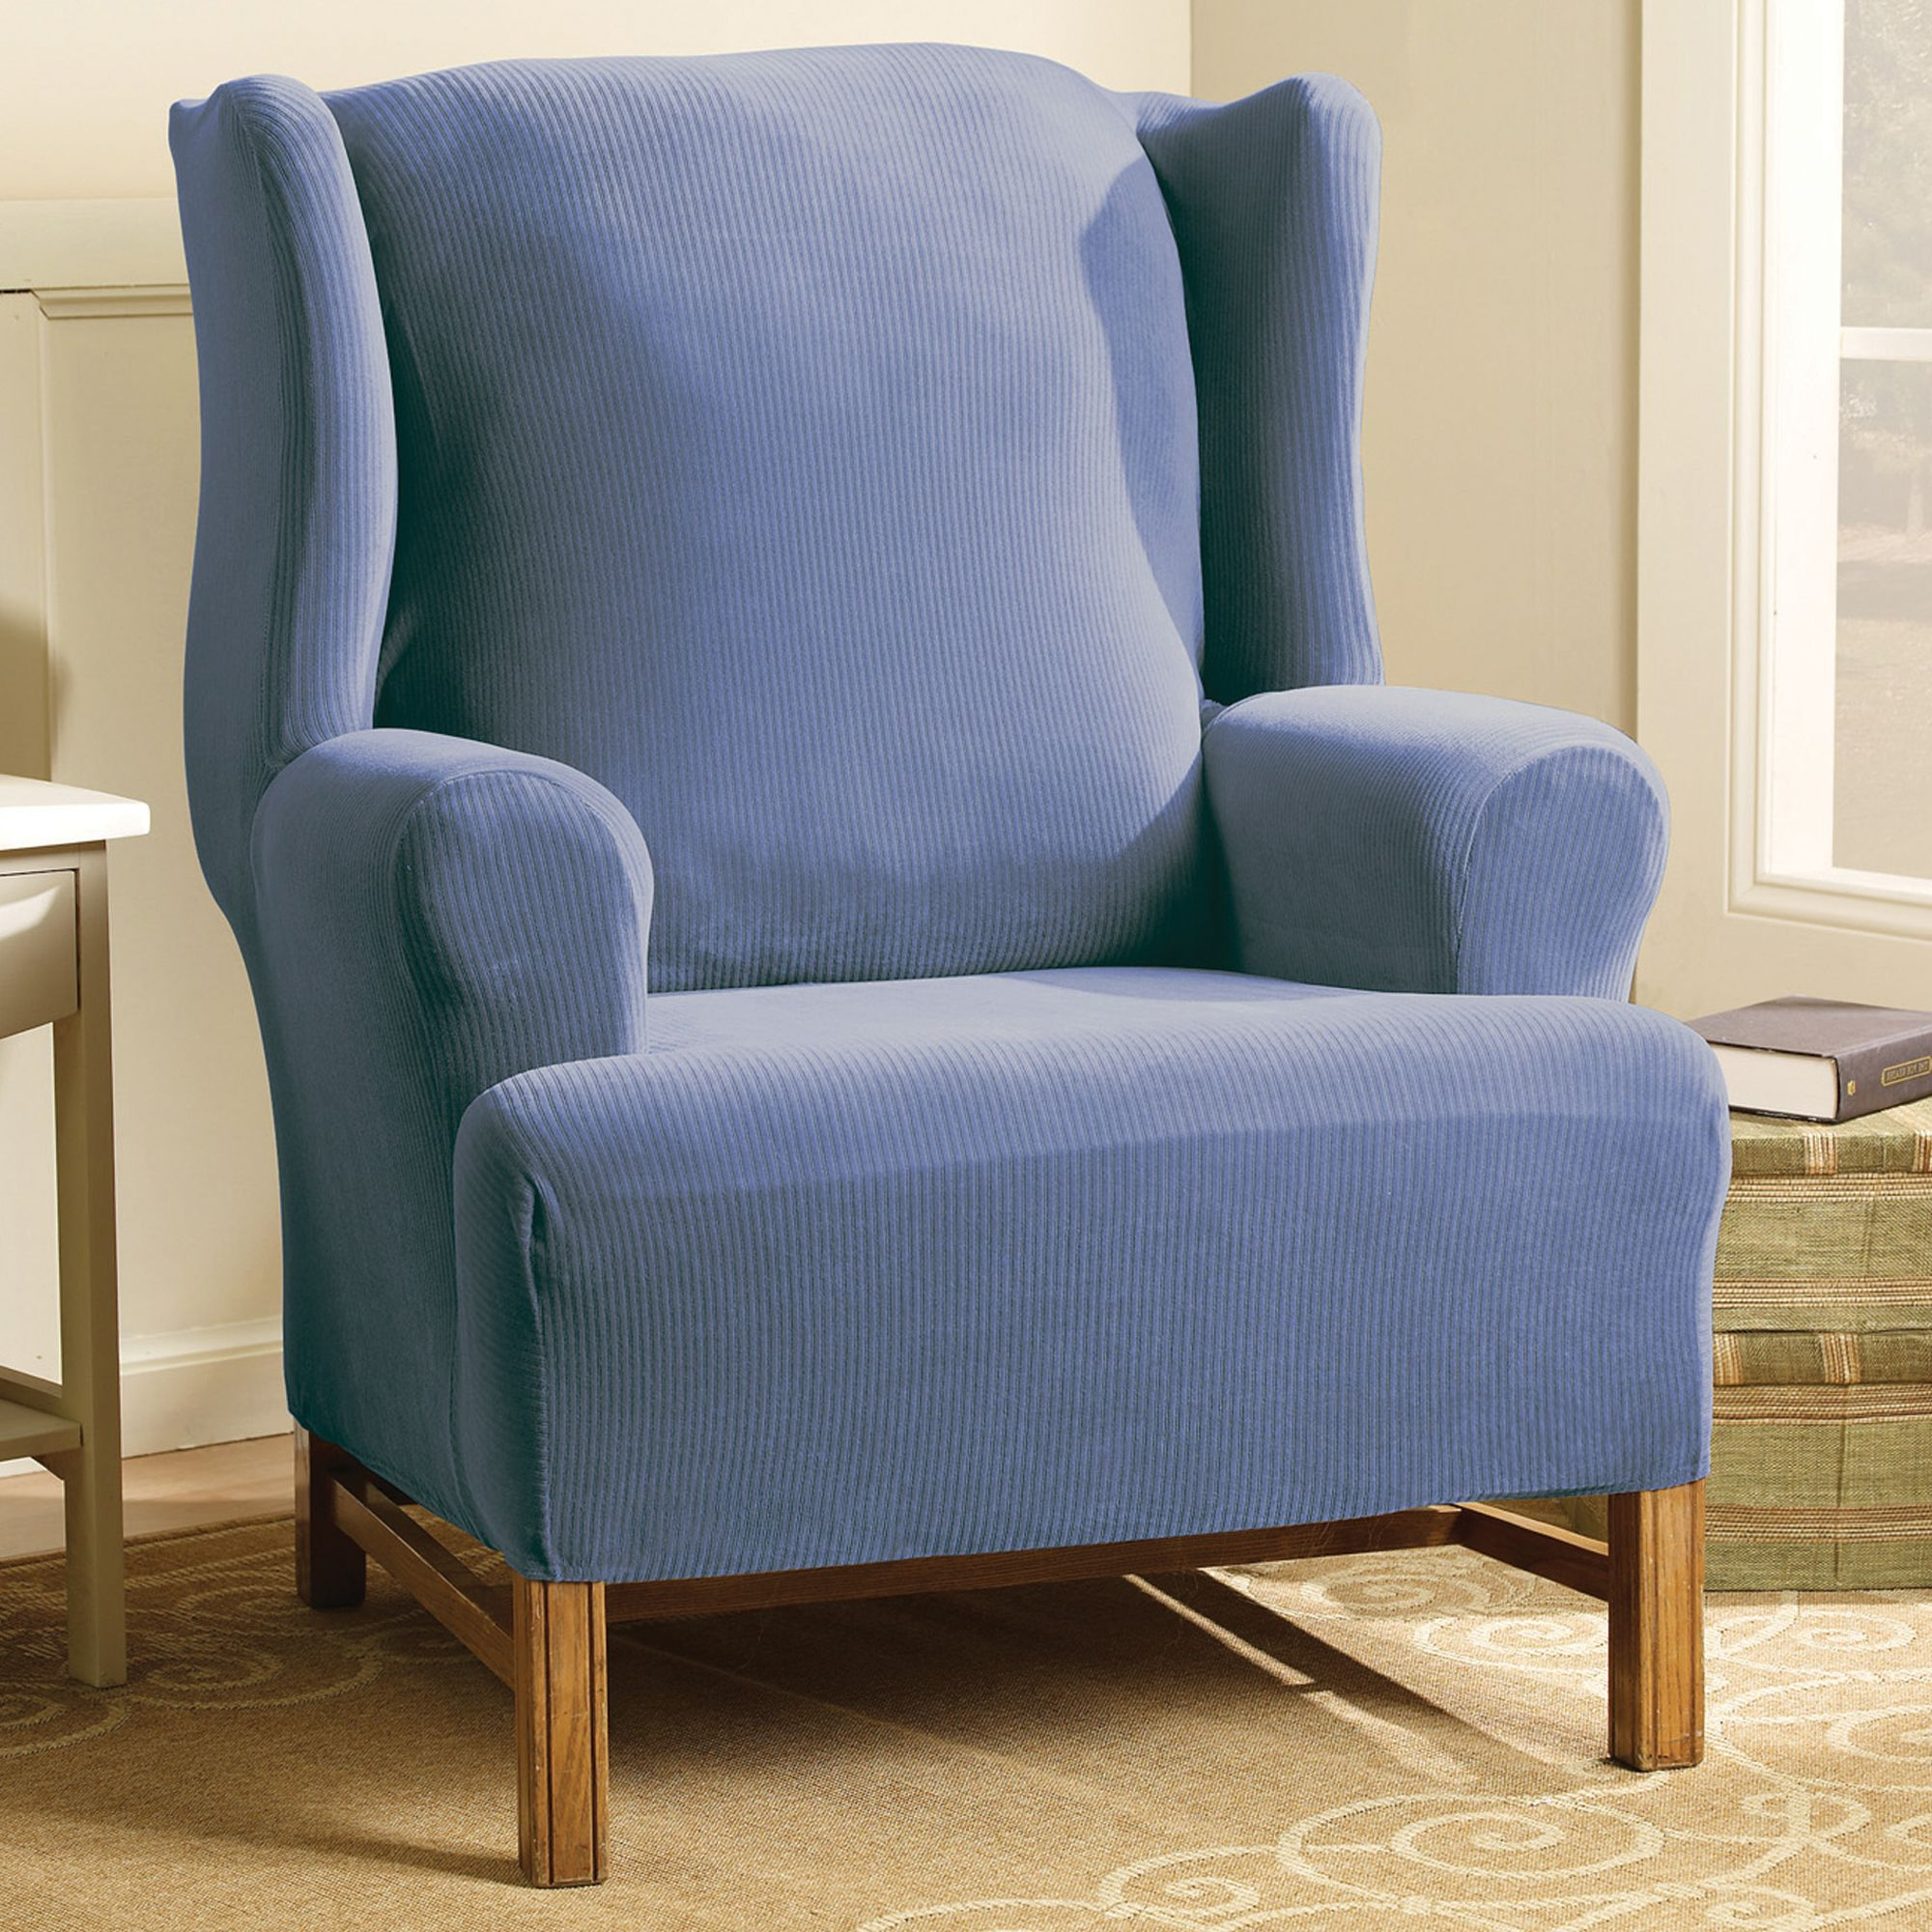 blue wing chair retro high chairs babies sears error file not found